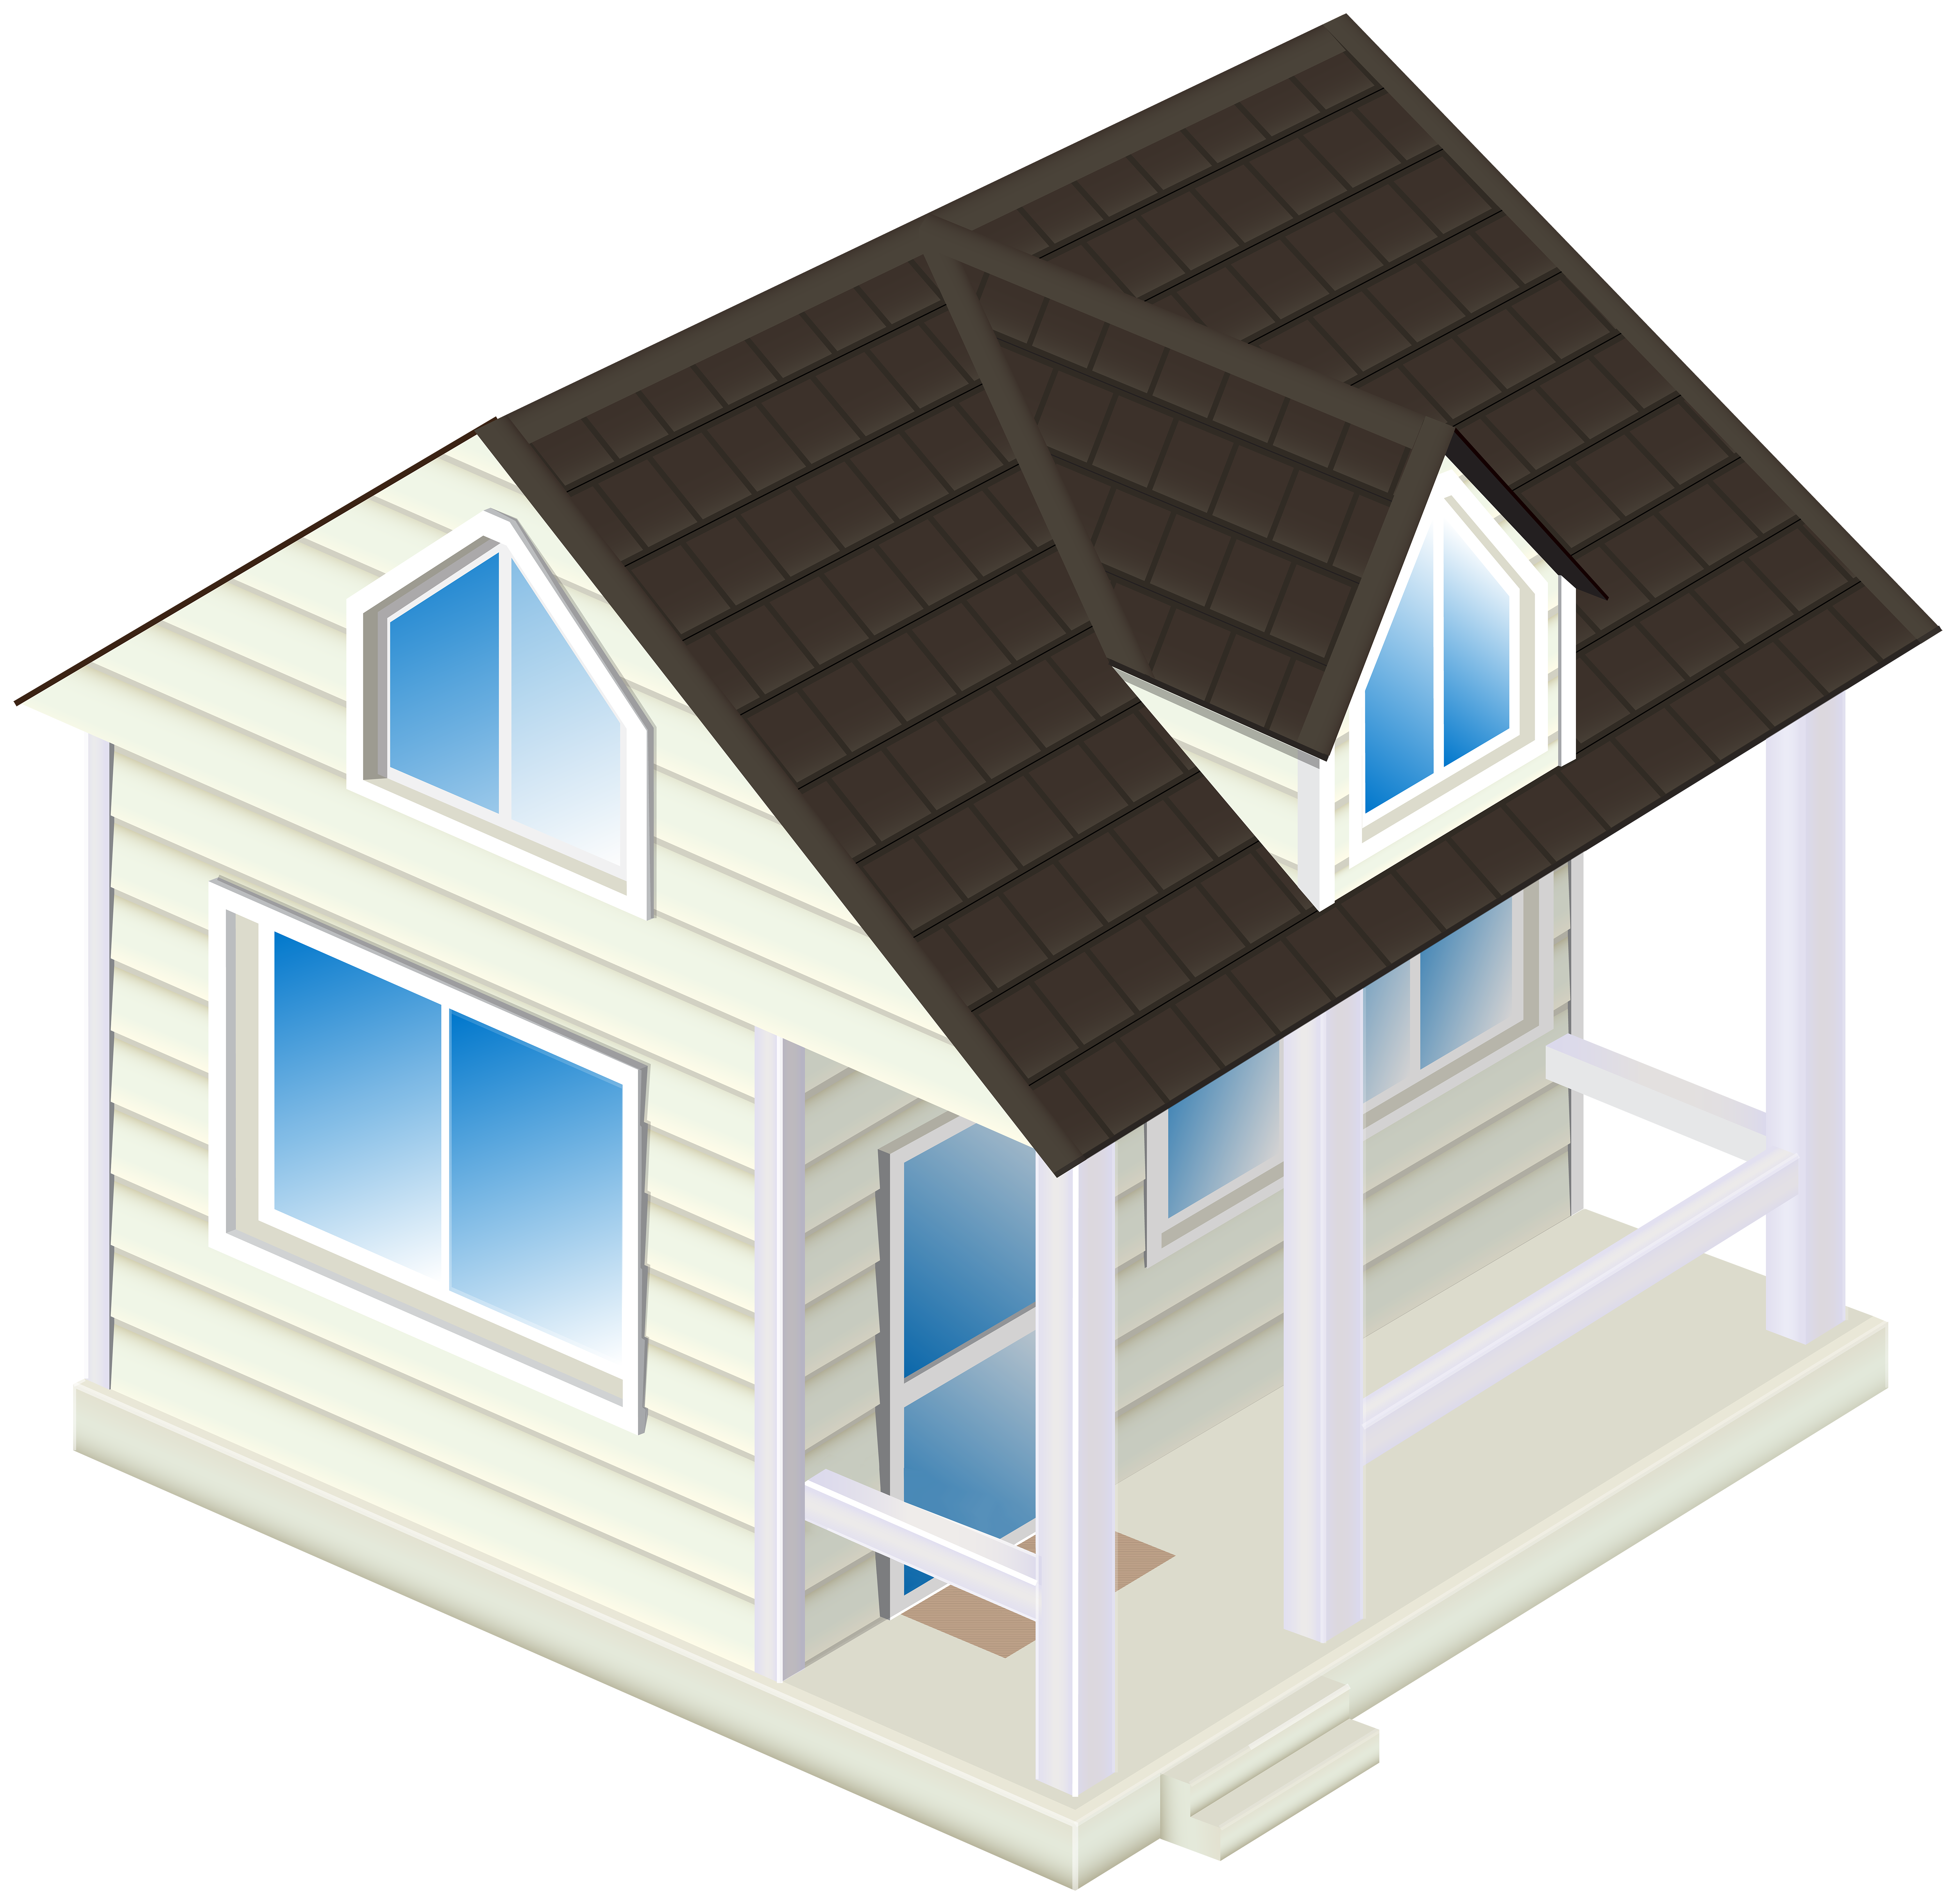 Underwater house clipart png free stock House PNG Clip Art - Best WEB Clipart png free stock